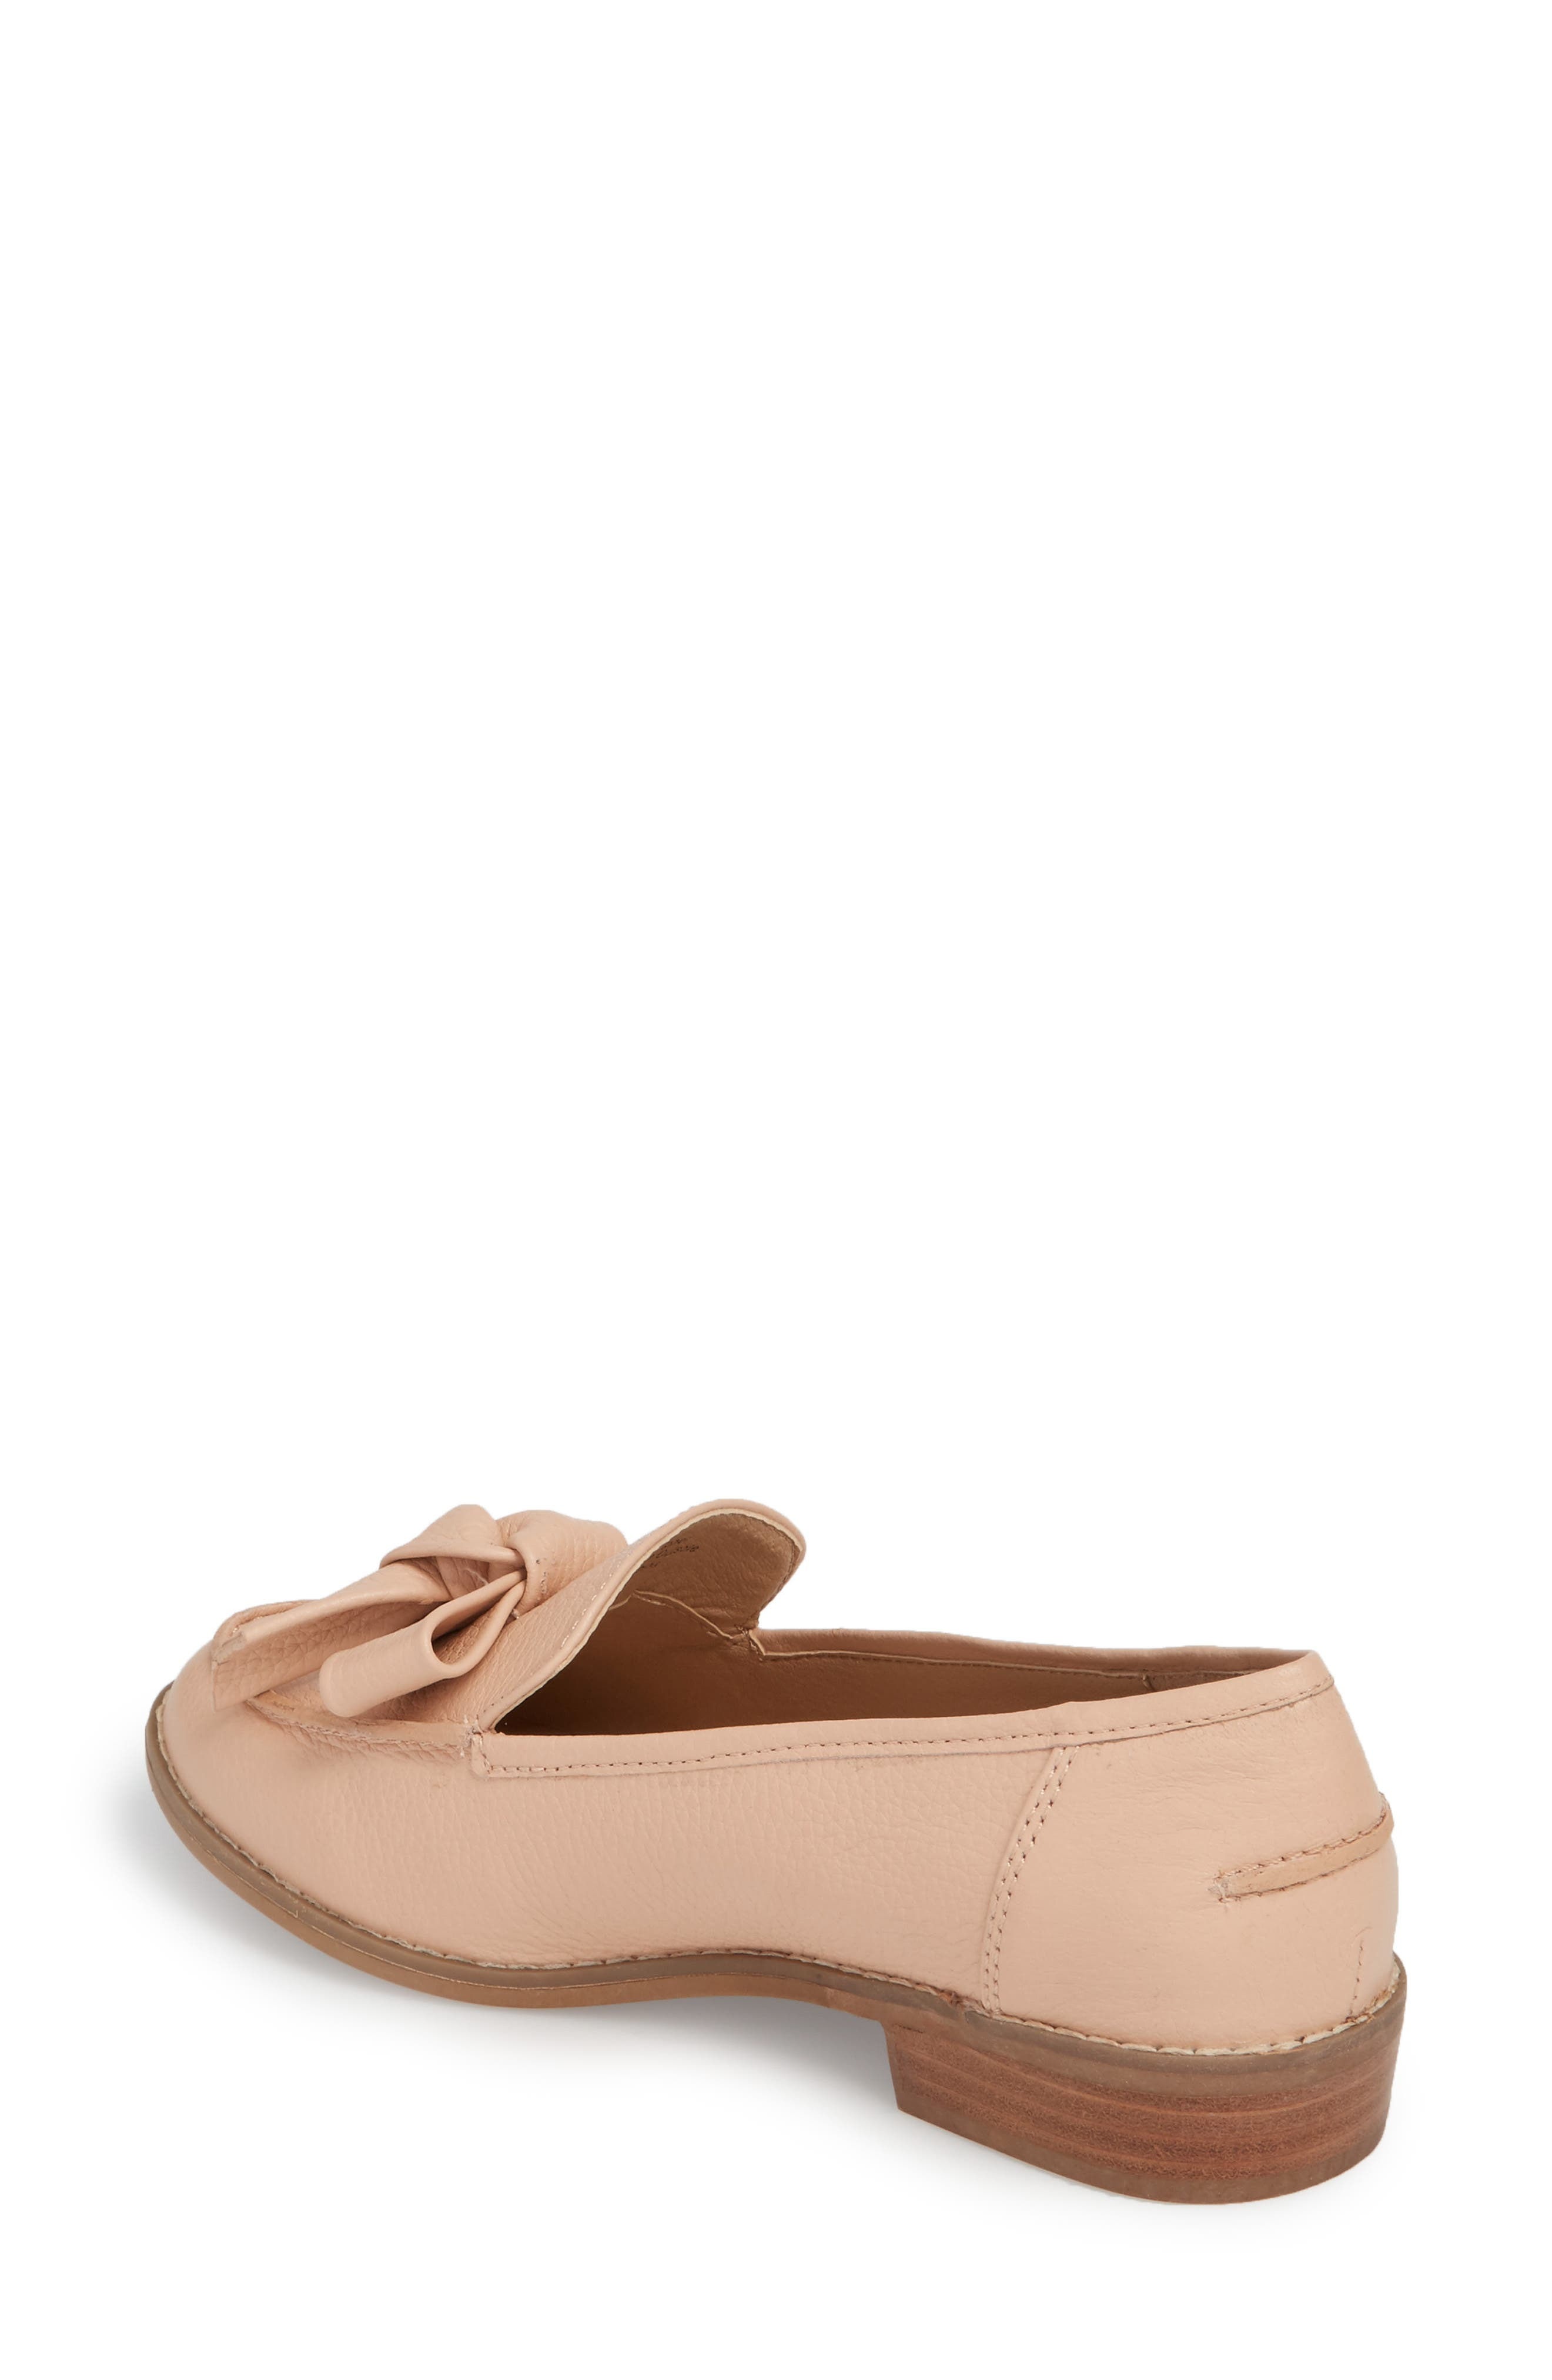 Beaux Loafer,                             Alternate thumbnail 2, color,                             Blush